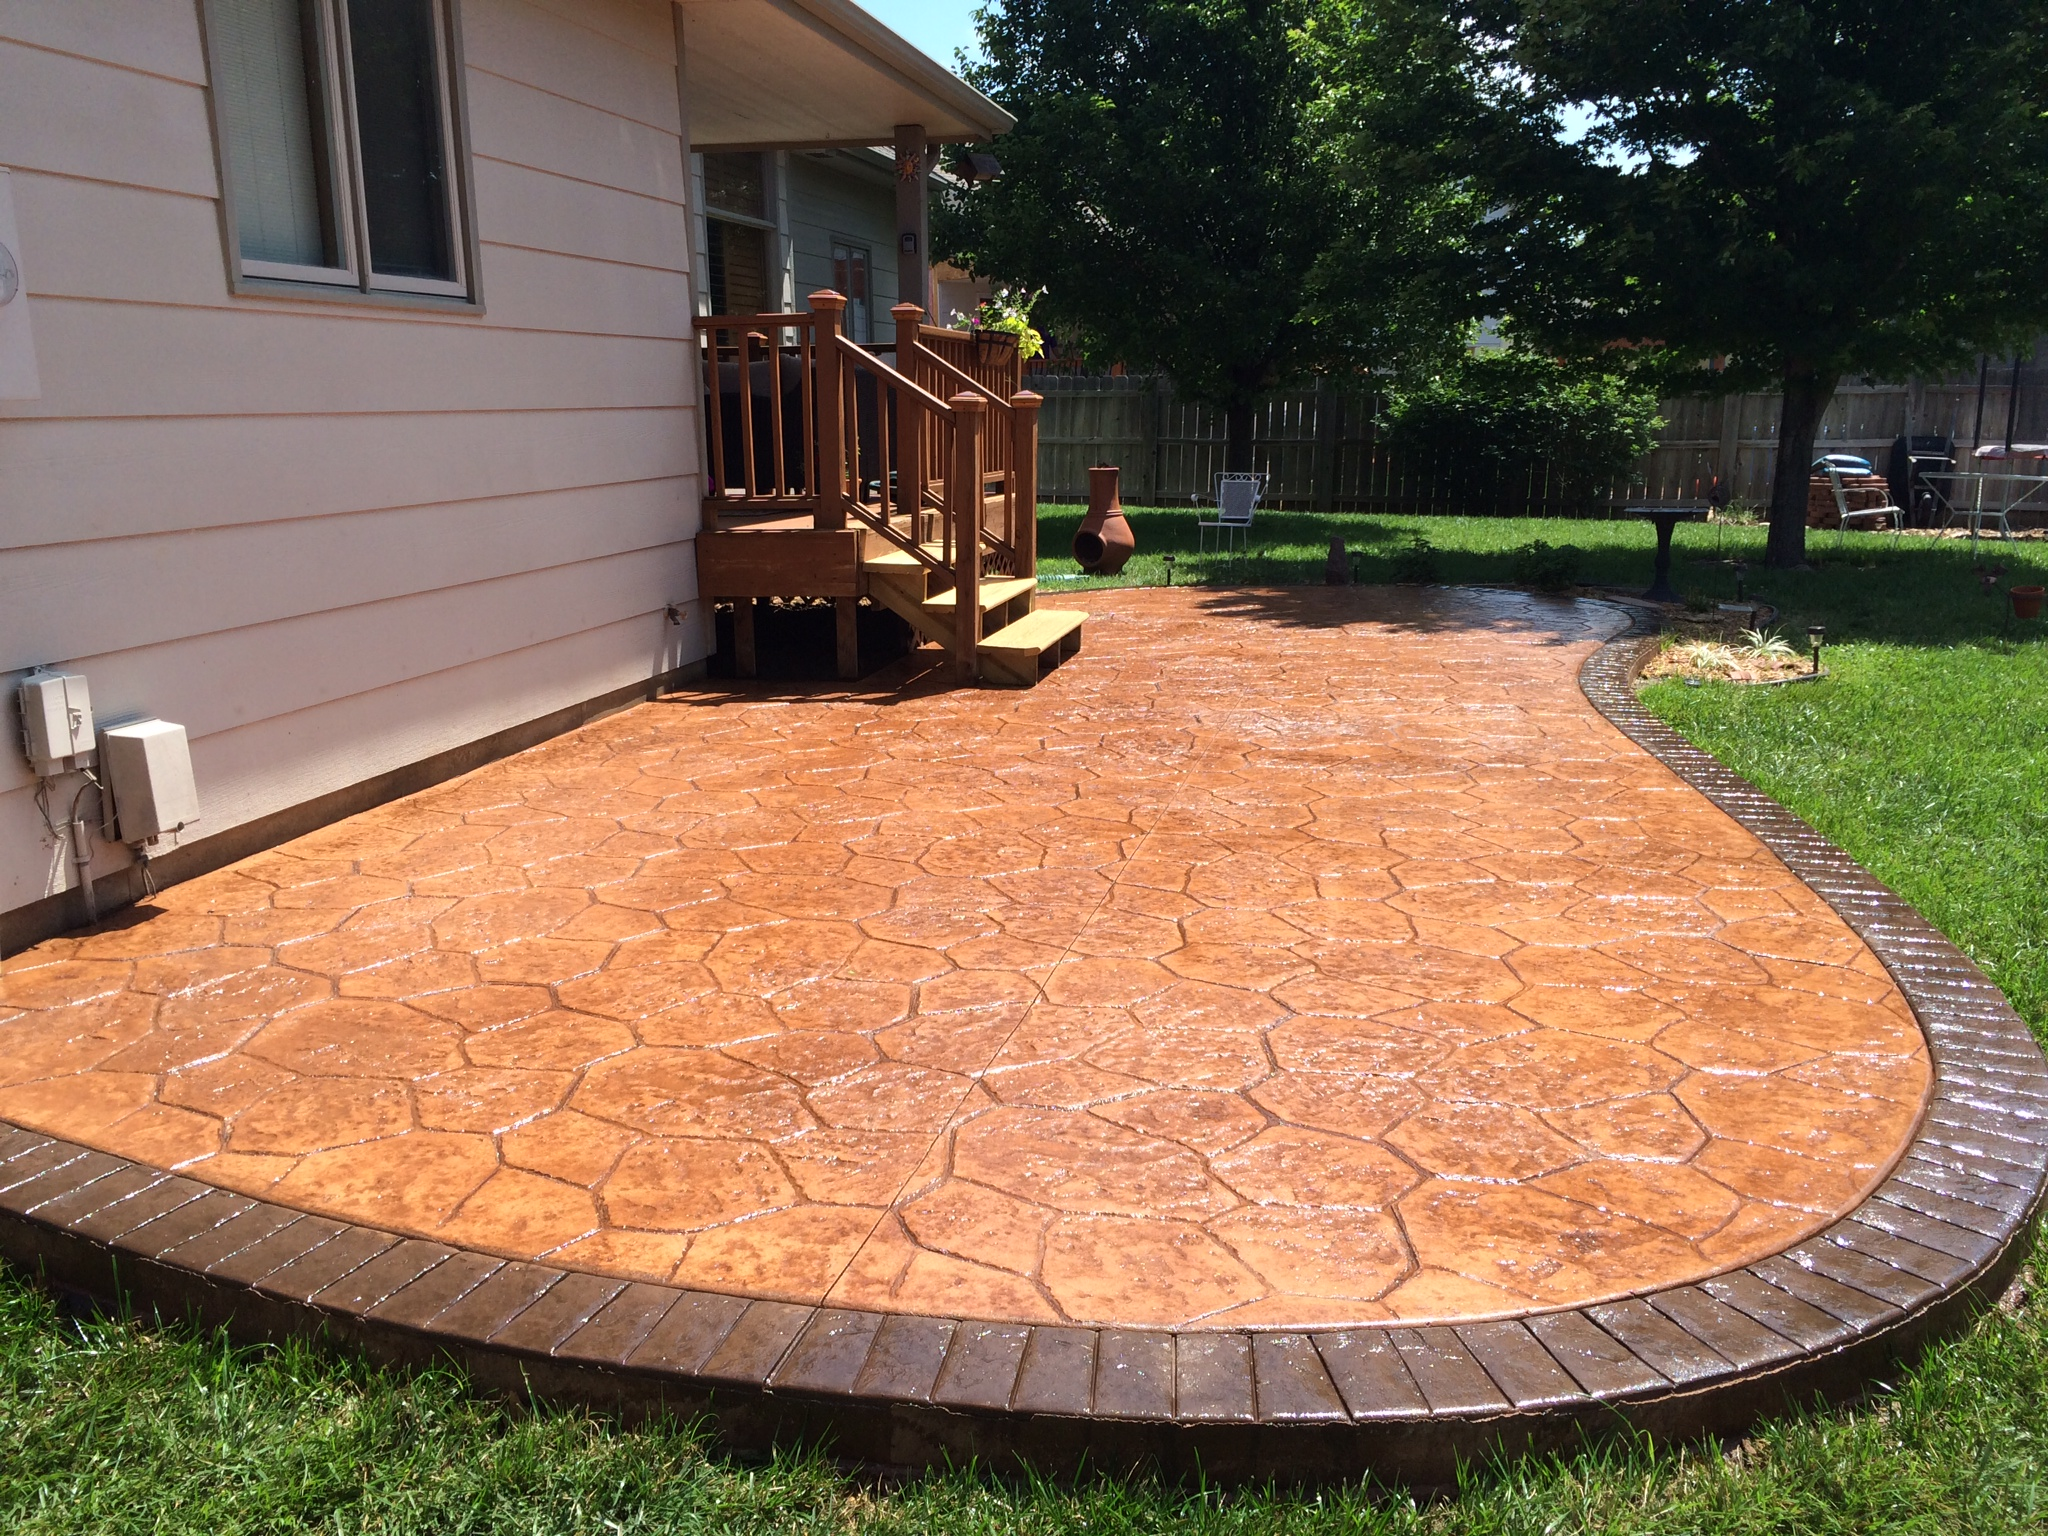 Patio Pavers can transform your backyard | Patio Pavers ... on Brick Paver Patio Designs id=52163